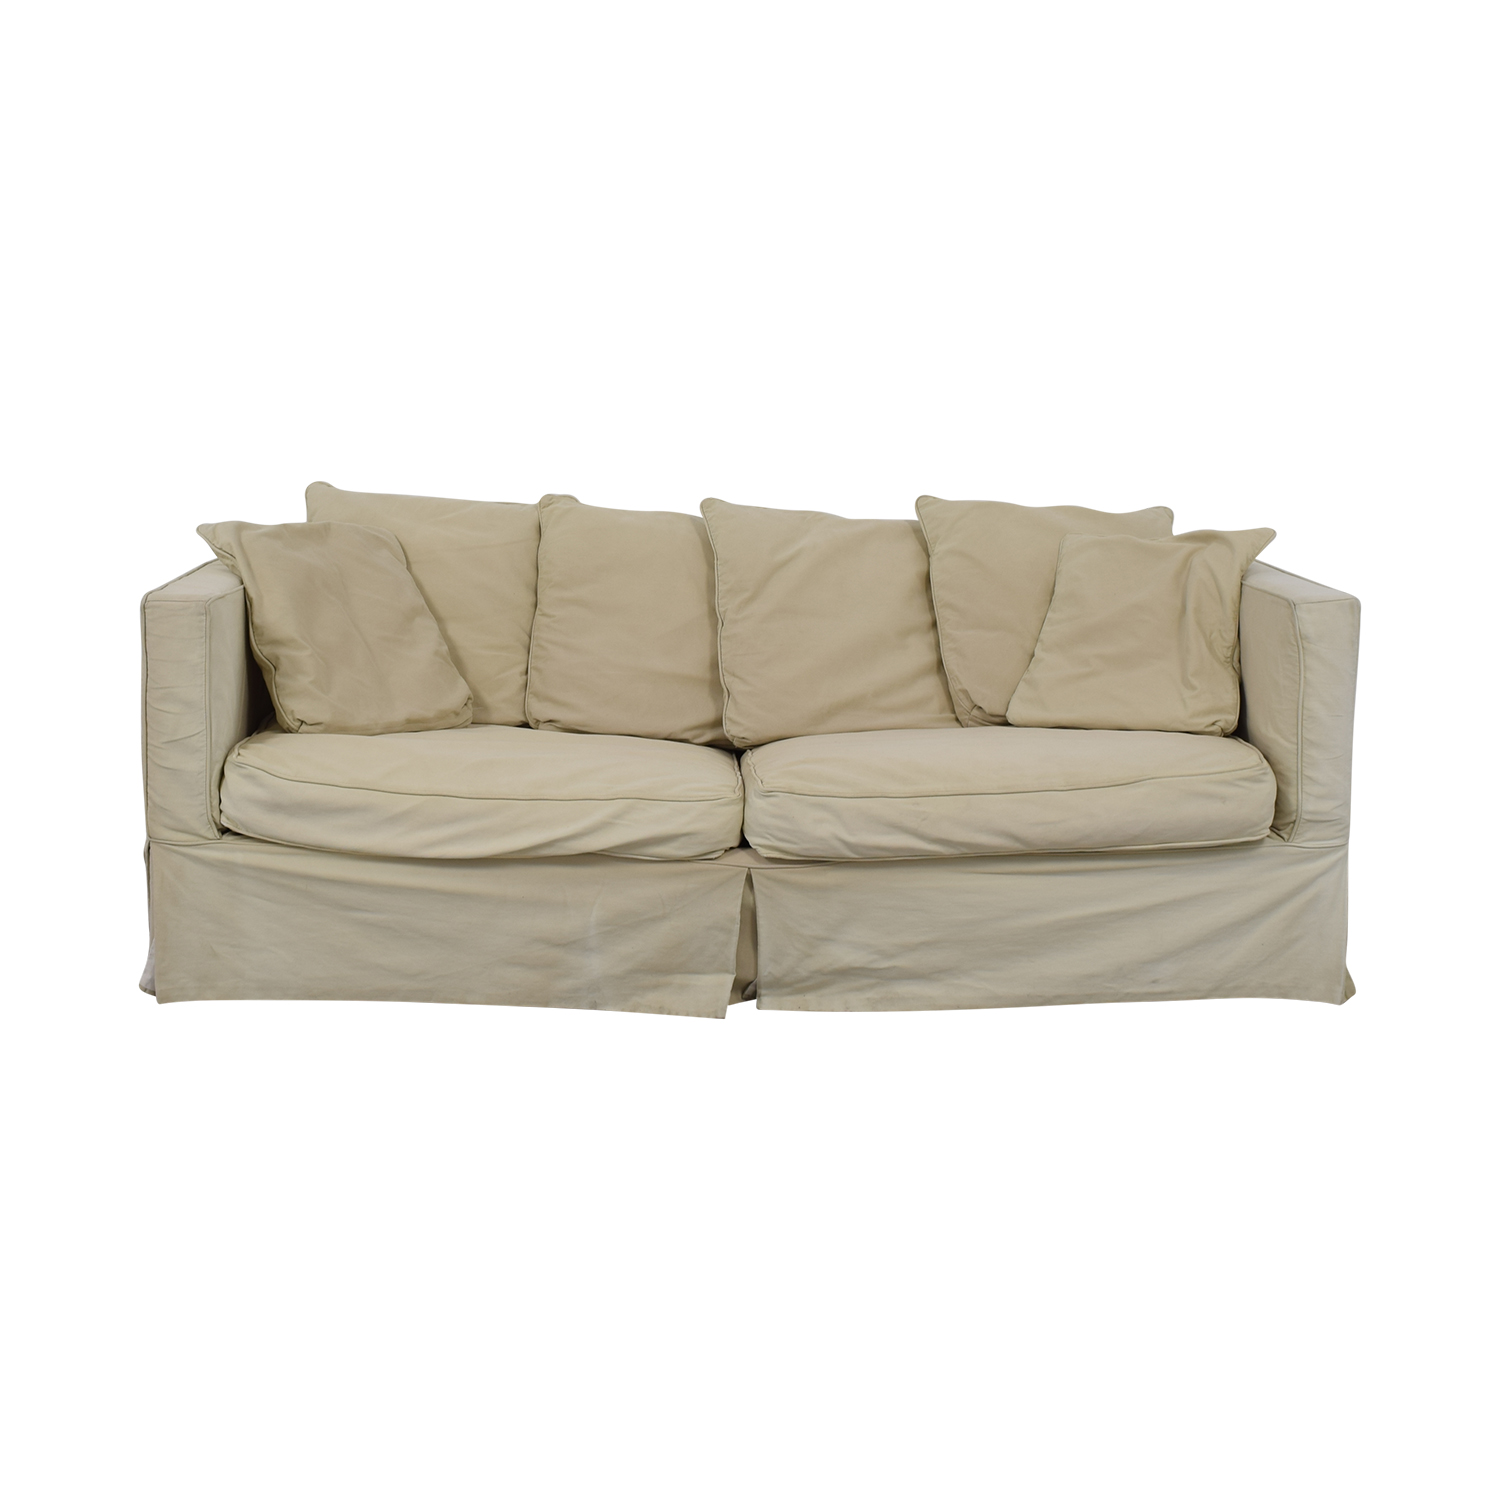 Crate & Barrel Crate & Barrel Beige Skirted Two-Cushion Sofa